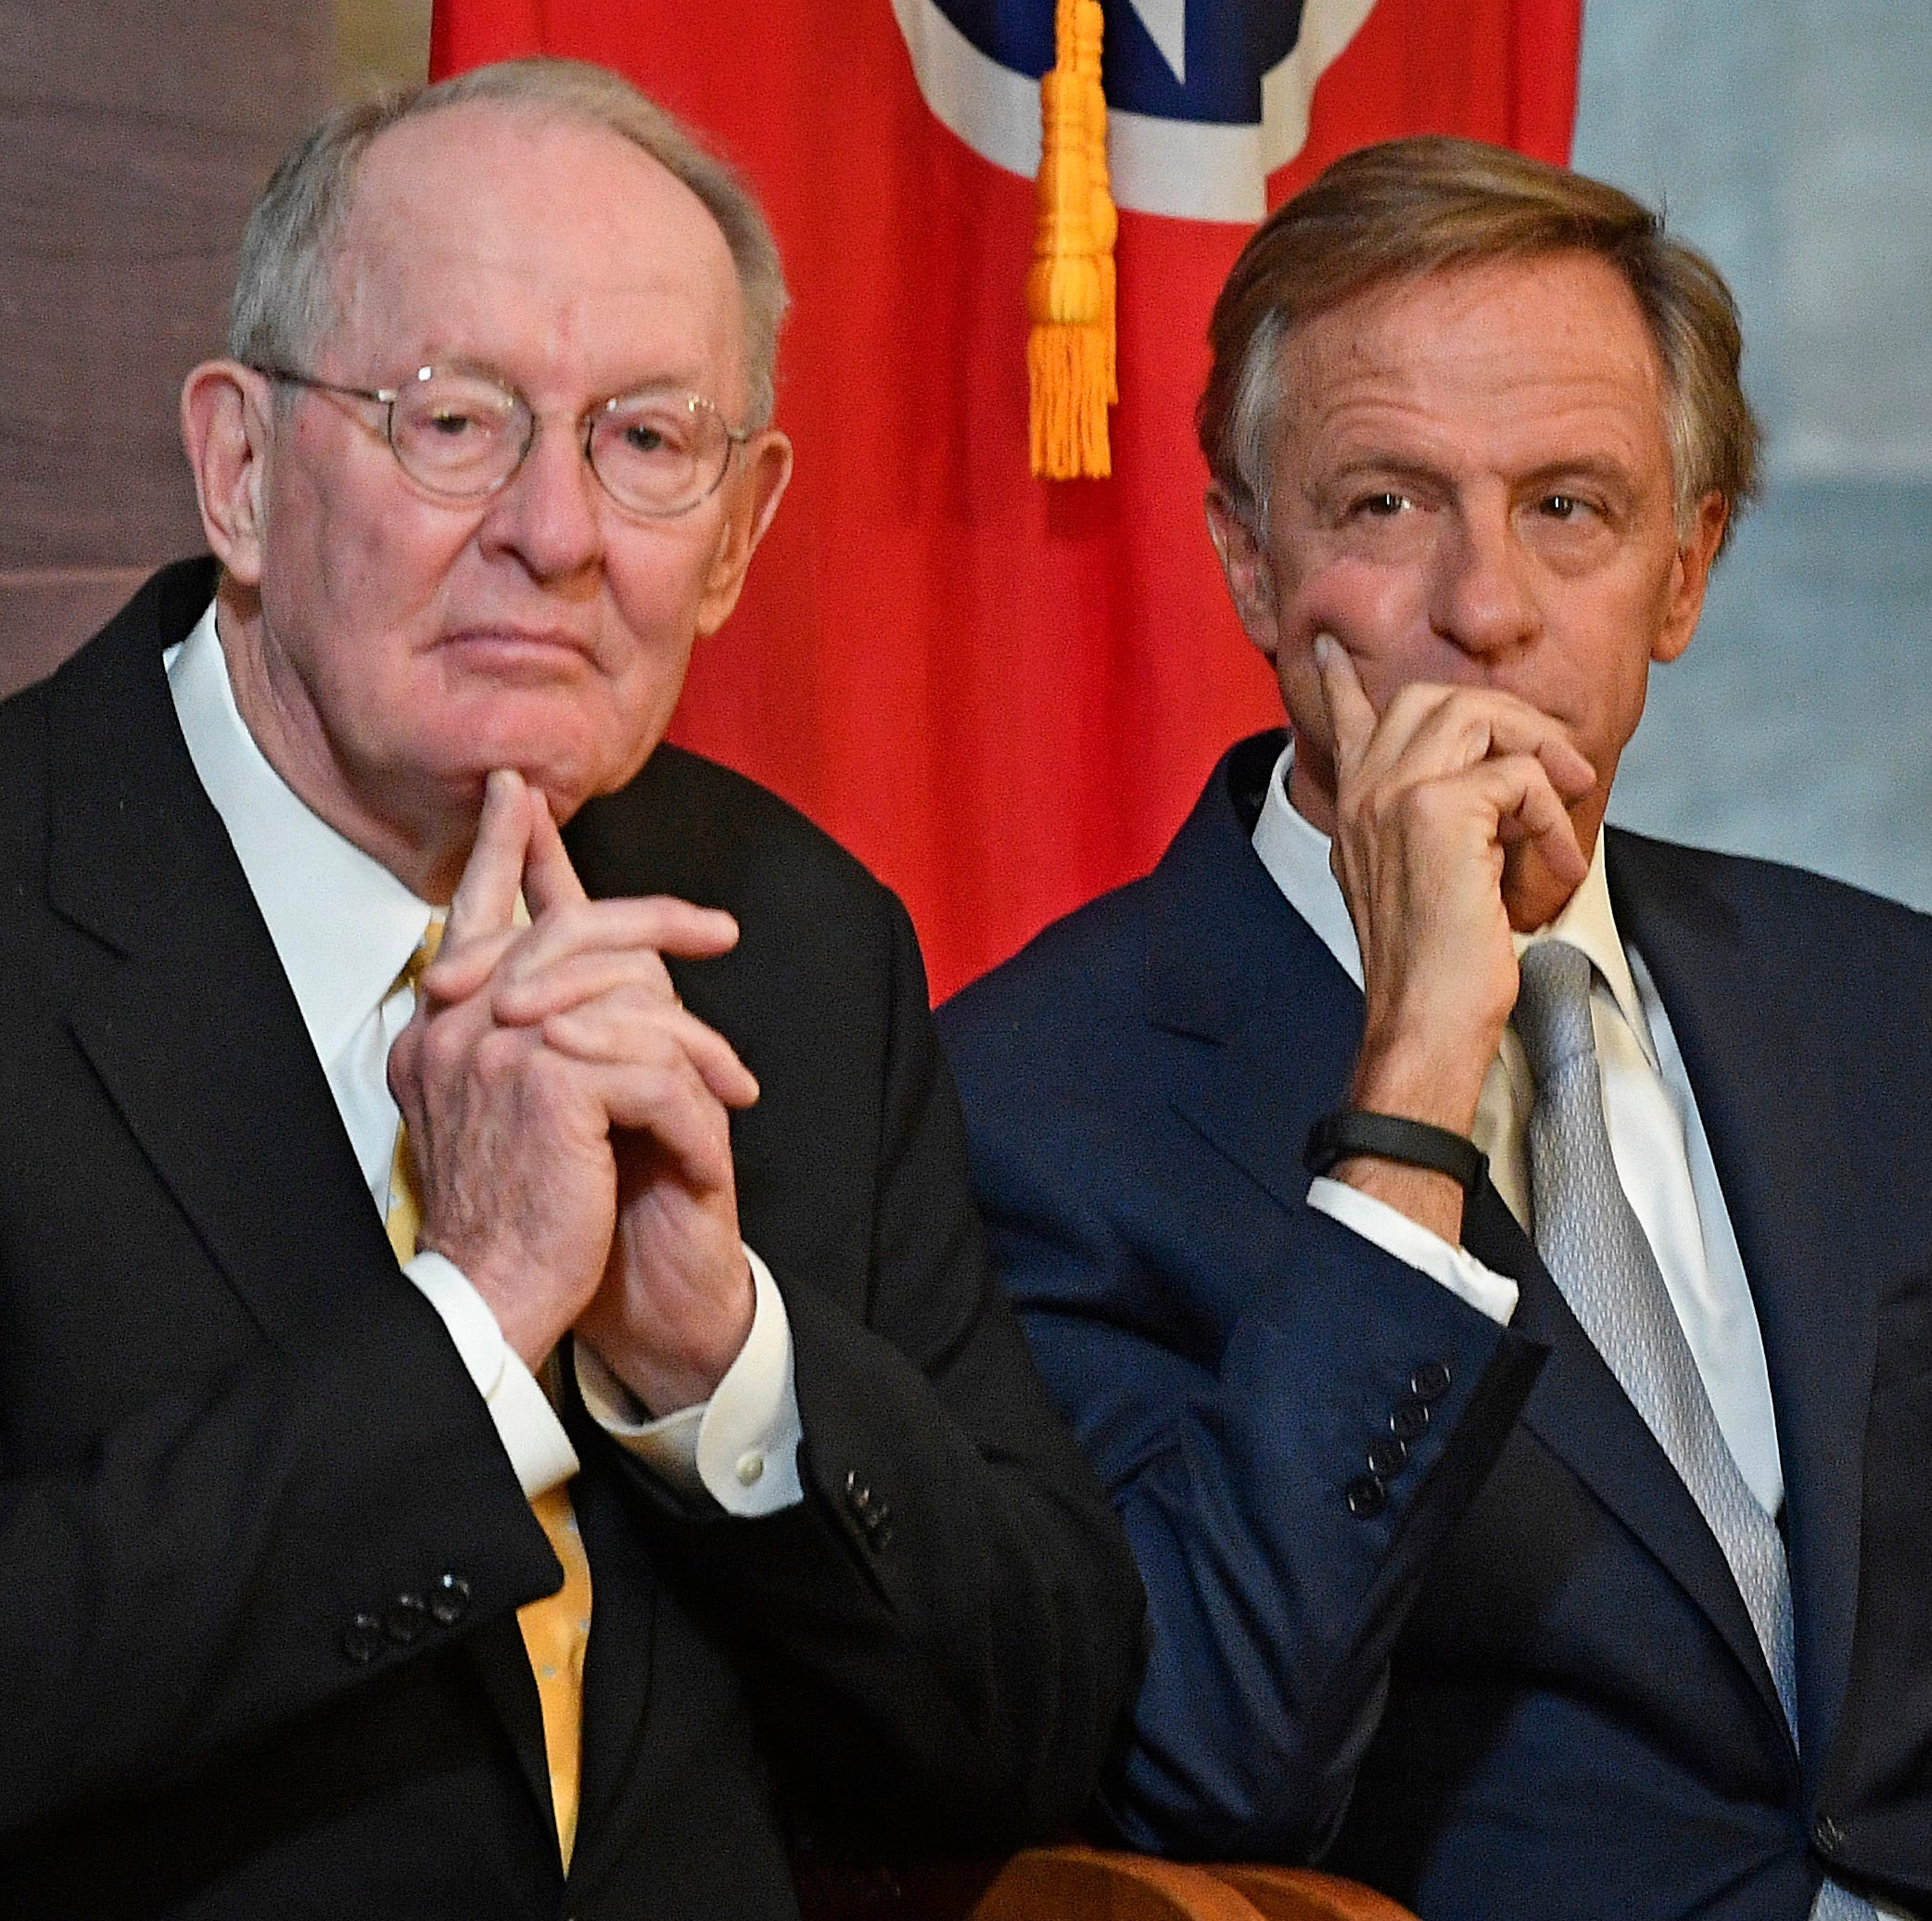 Gov. Bill Haslam considers 2020 bid for US Senate in wake of Sen. Lamar Alexander's retirement news